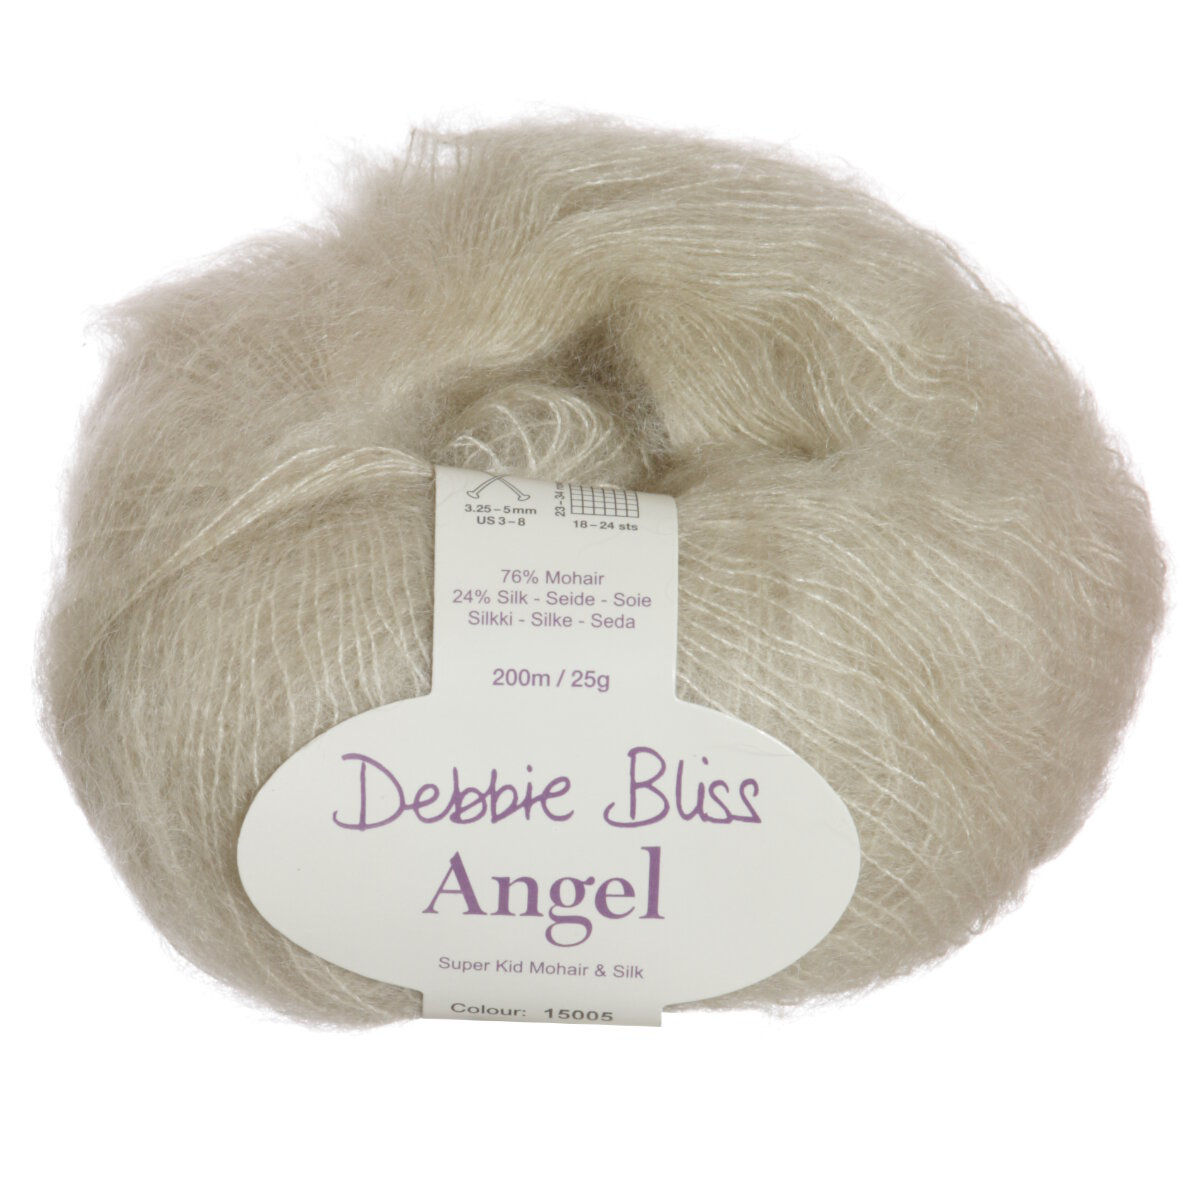 Knitting Patterns Debbie Bliss Angel : Debbie Bliss Angel Yarn - 05 Stone at Jimmy Beans Wool